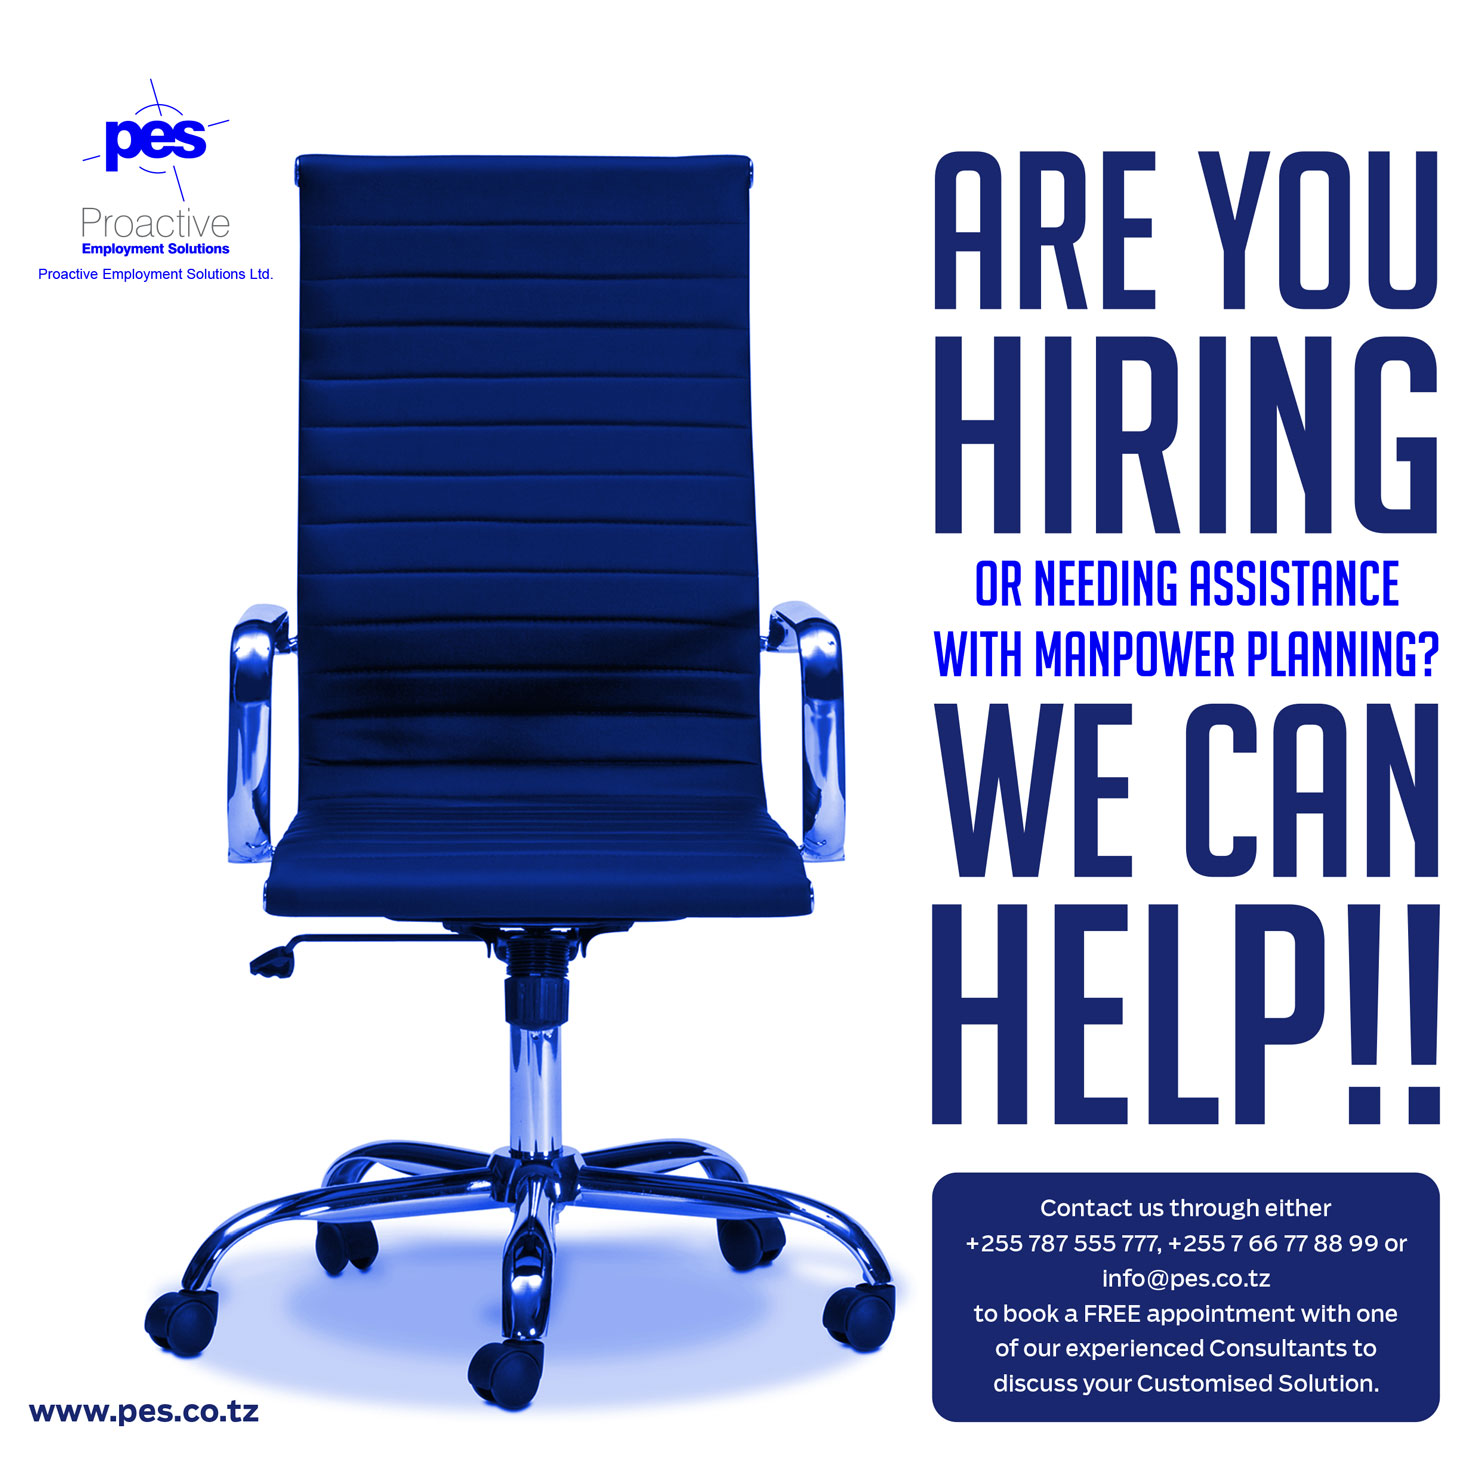 PROACTIVE EMPLOYMENT SOLUTIONS (PES)